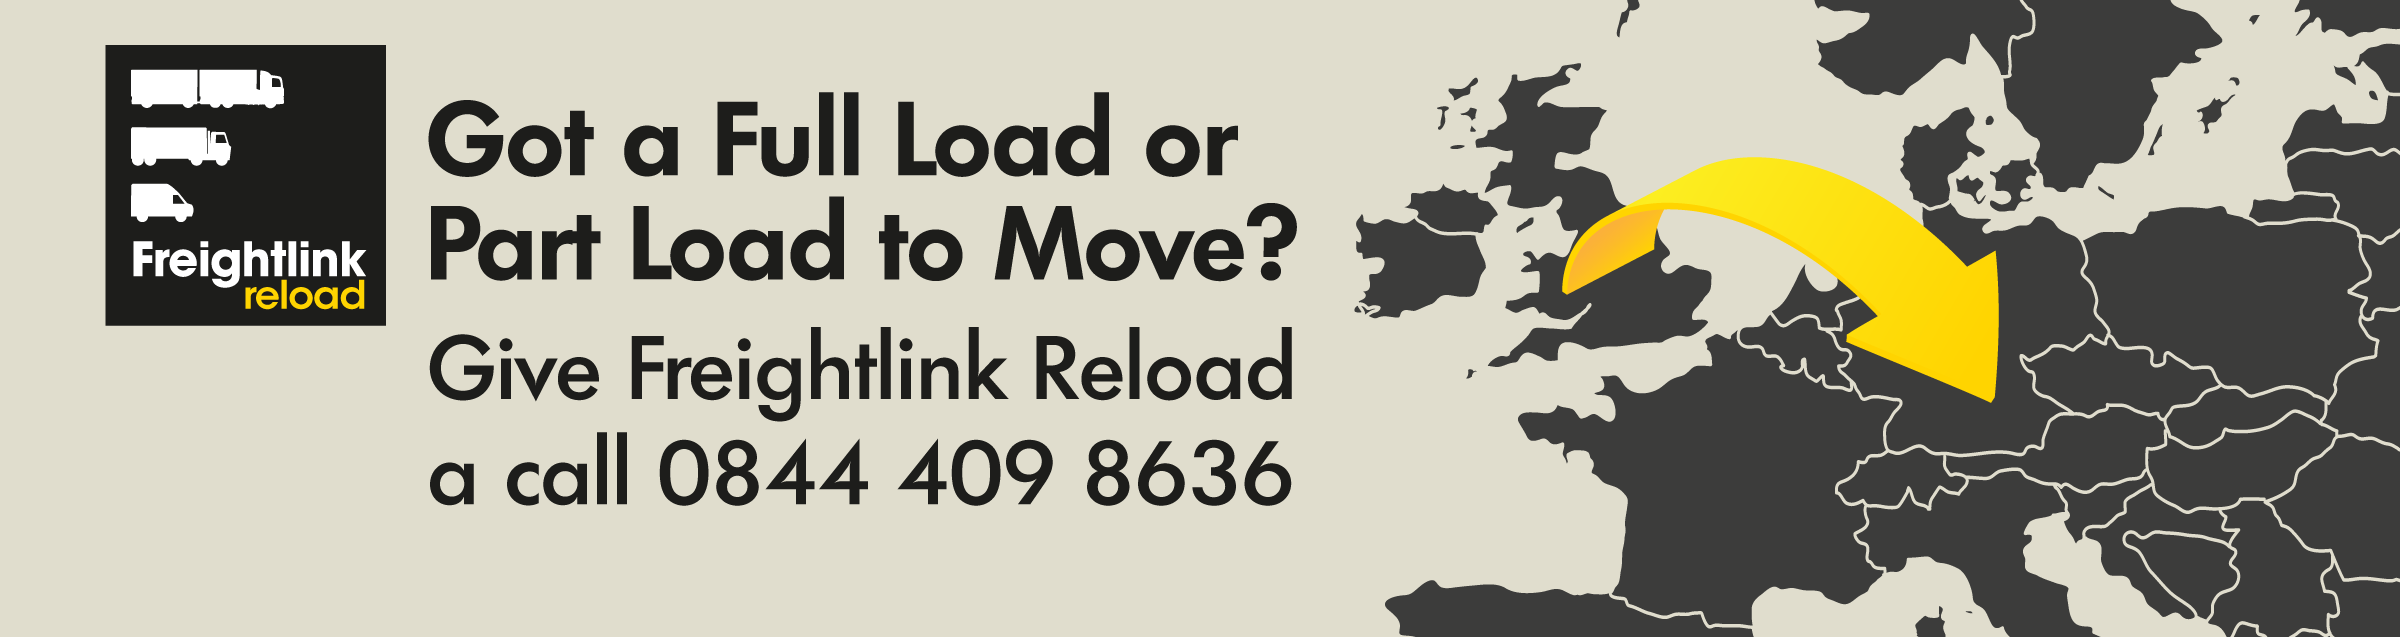 Got a full load or part load to move? Give Freightlink Reload a call 0844 409 8636